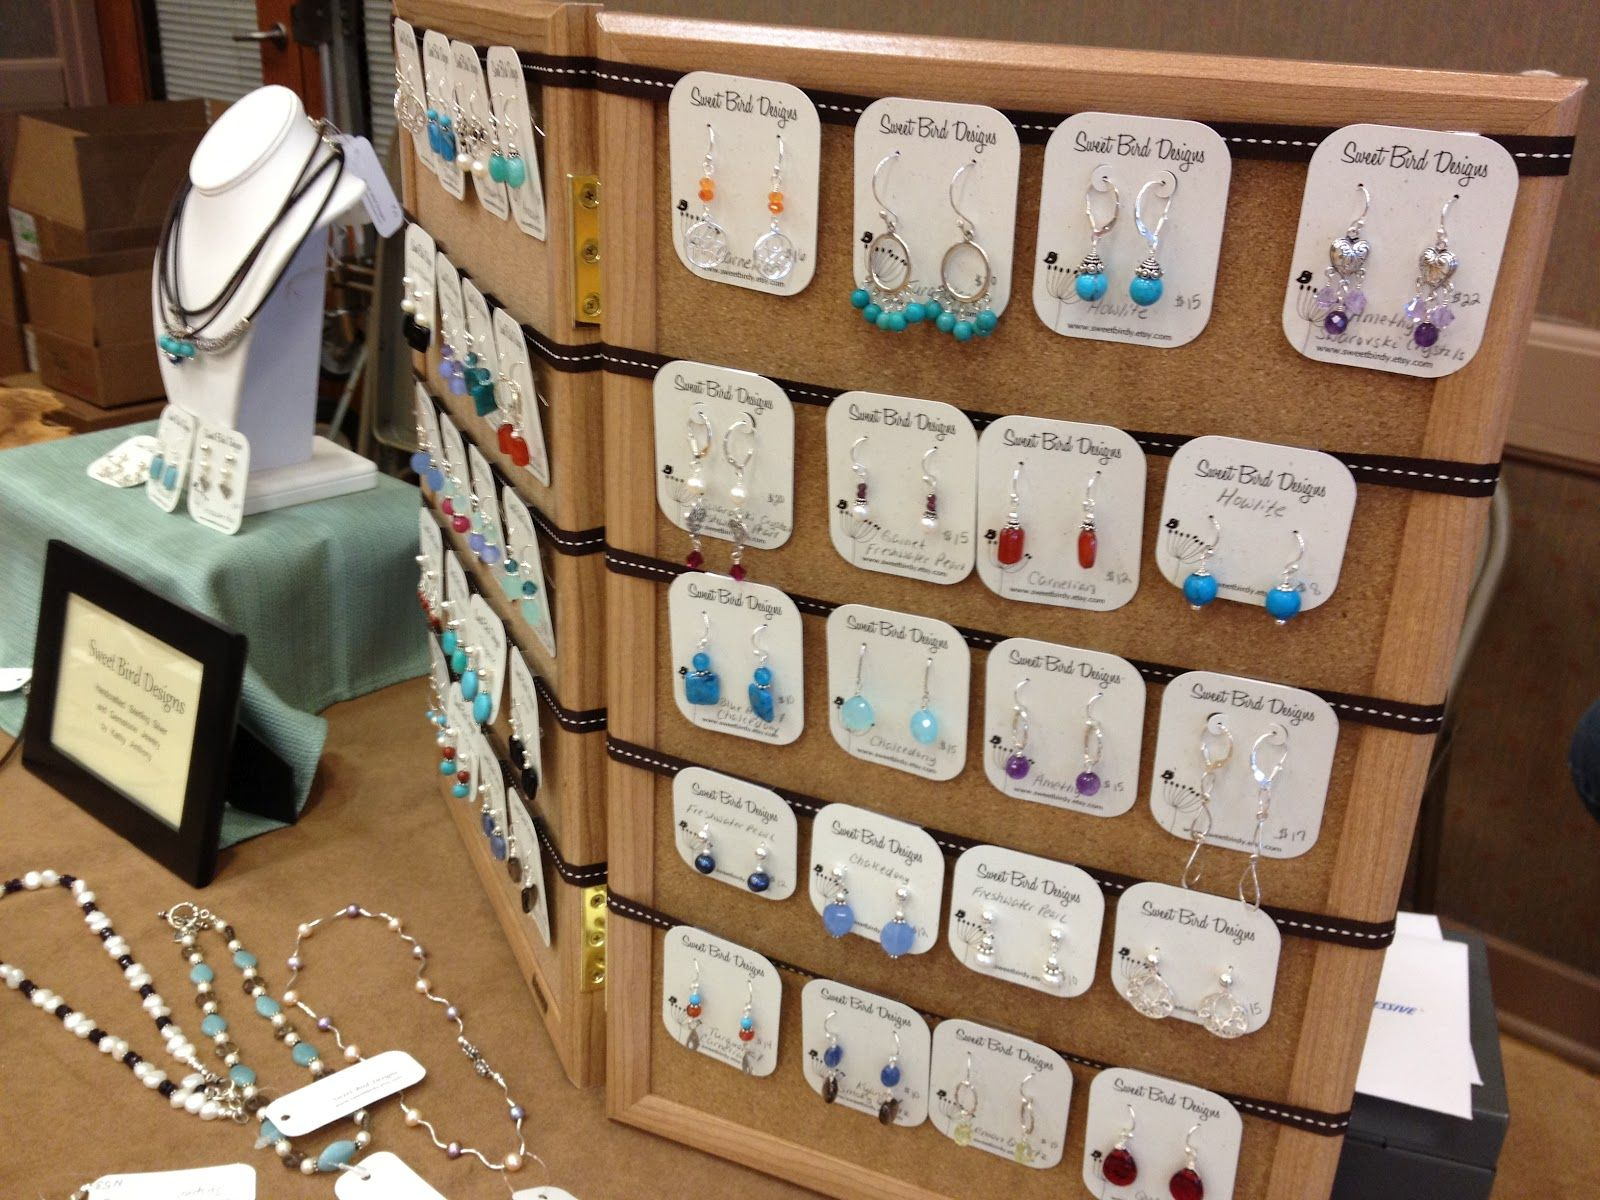 20++ Jewelry display ideas for craft shows ideas in 2021